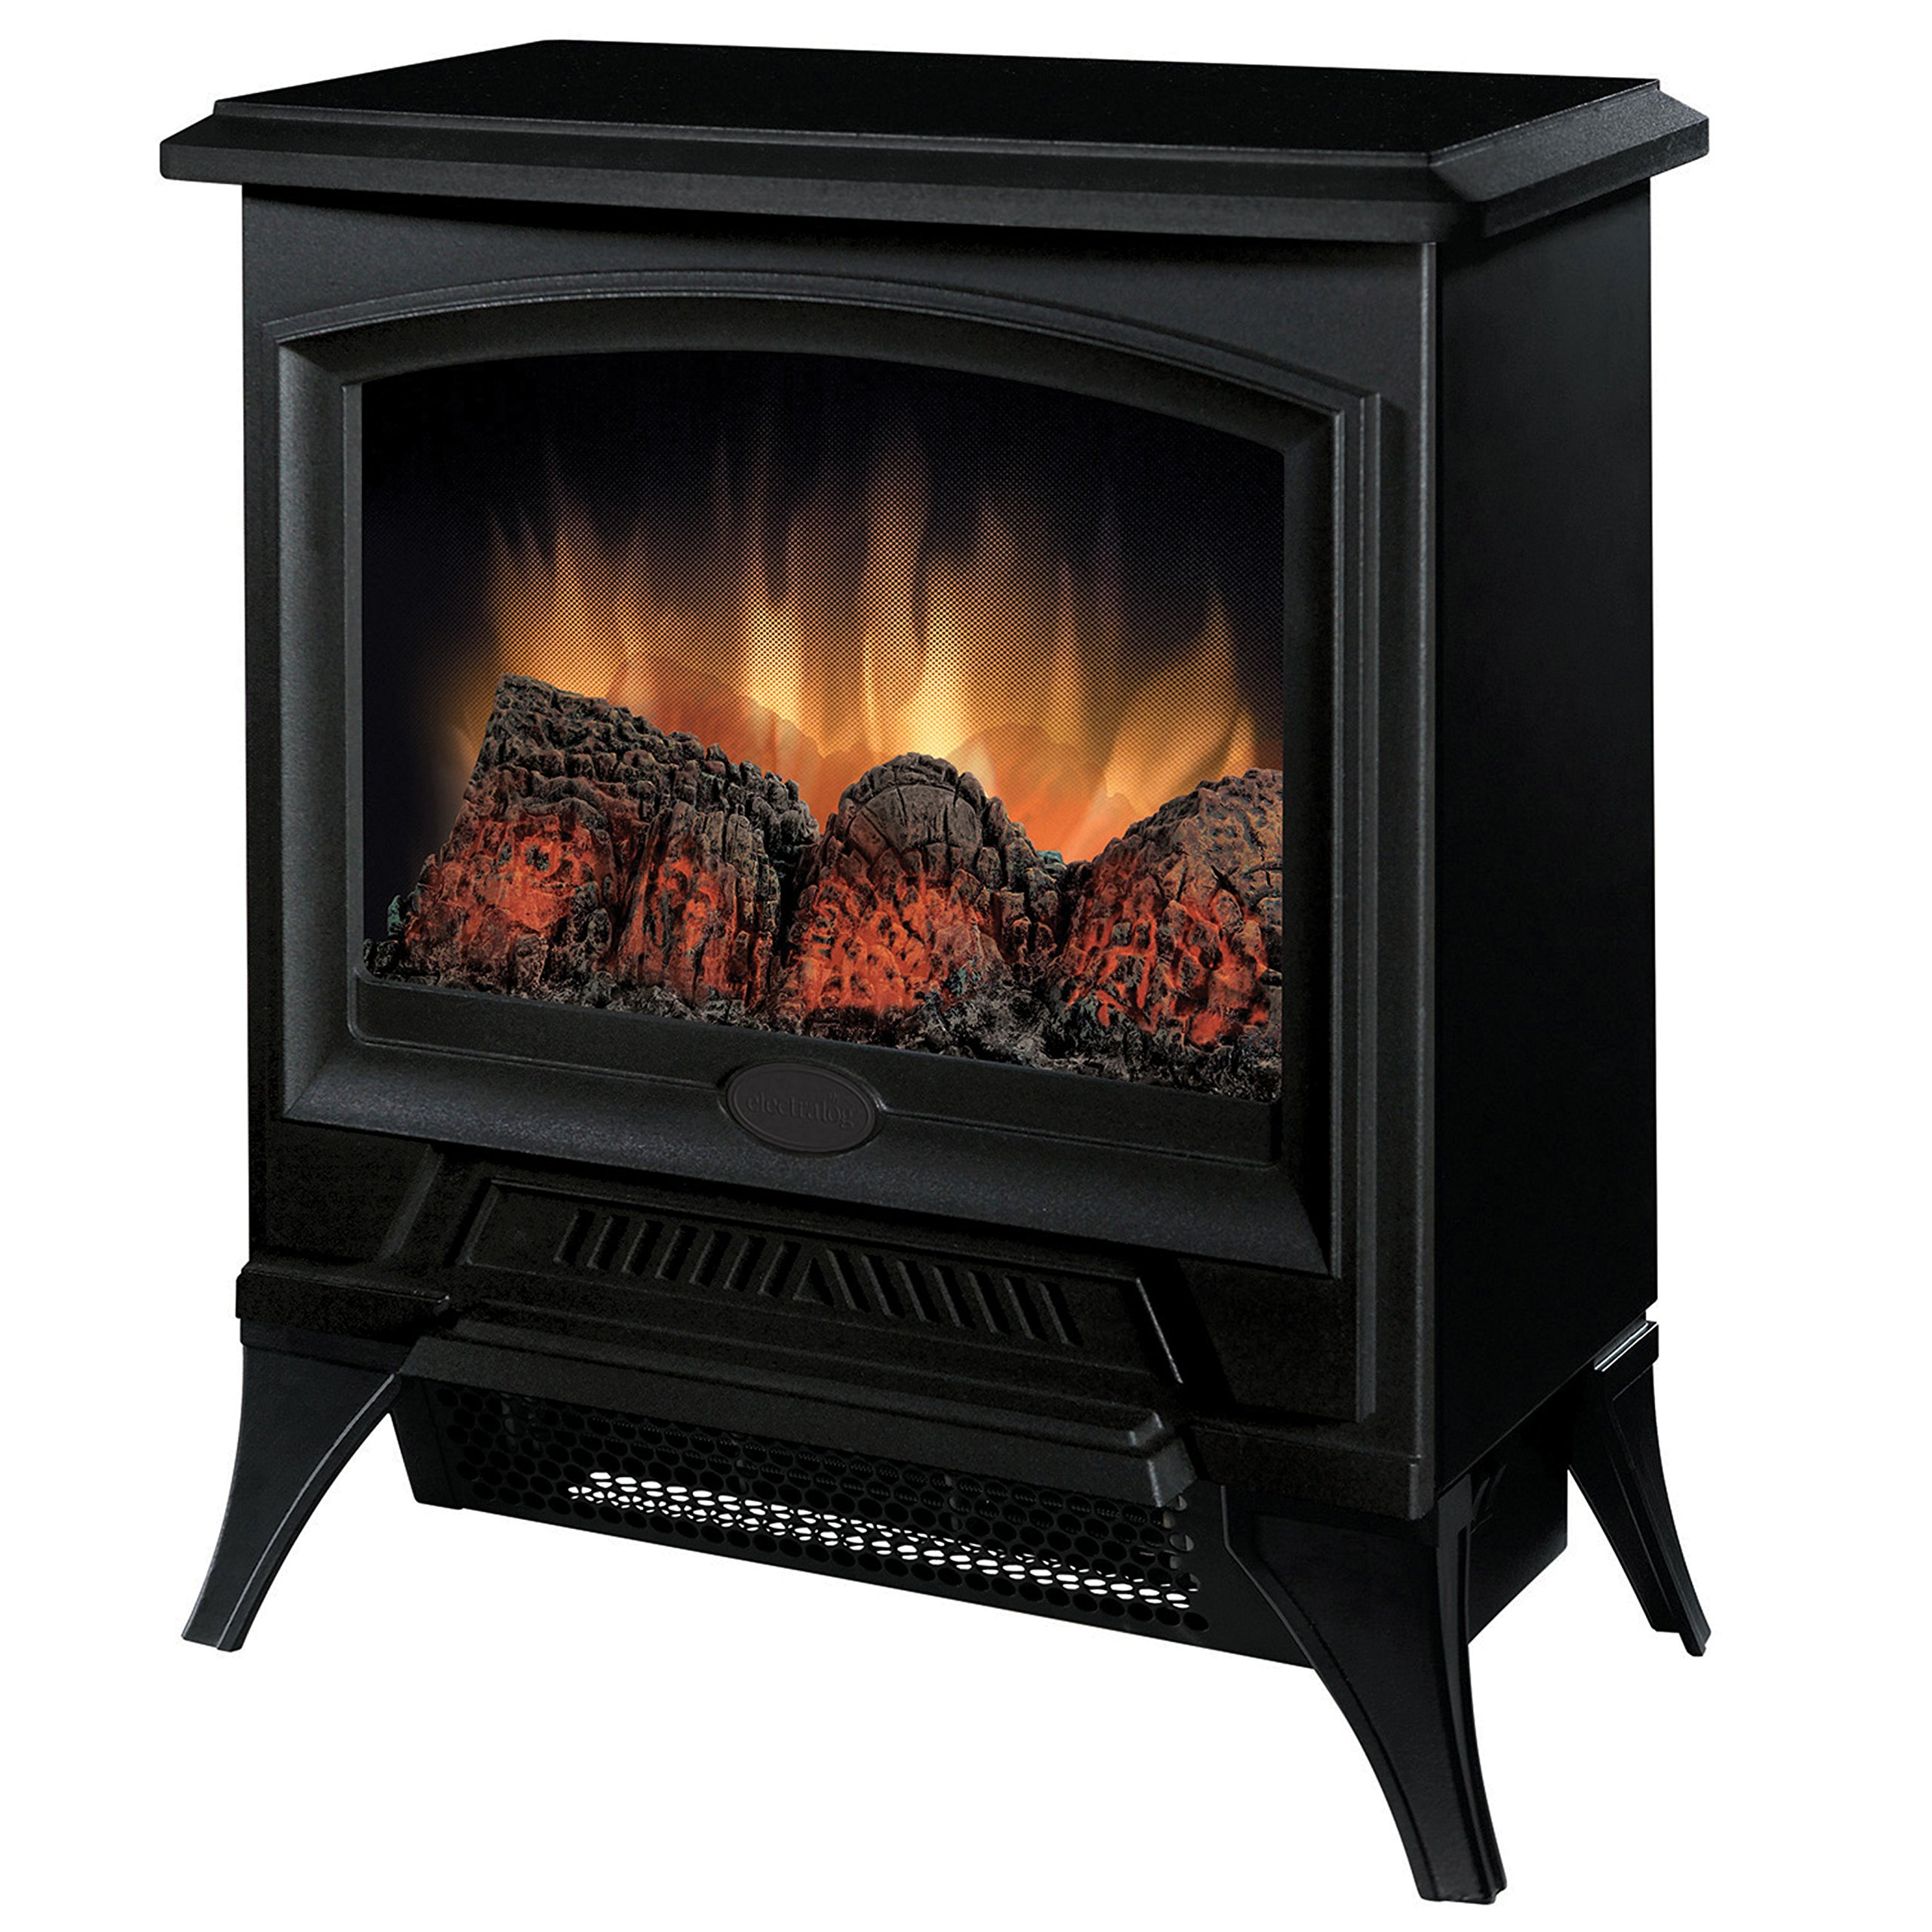 Superb Electric Fireplace Heater Amazon Part - 4: Dimplex CS-12056A Compact Electric Stove